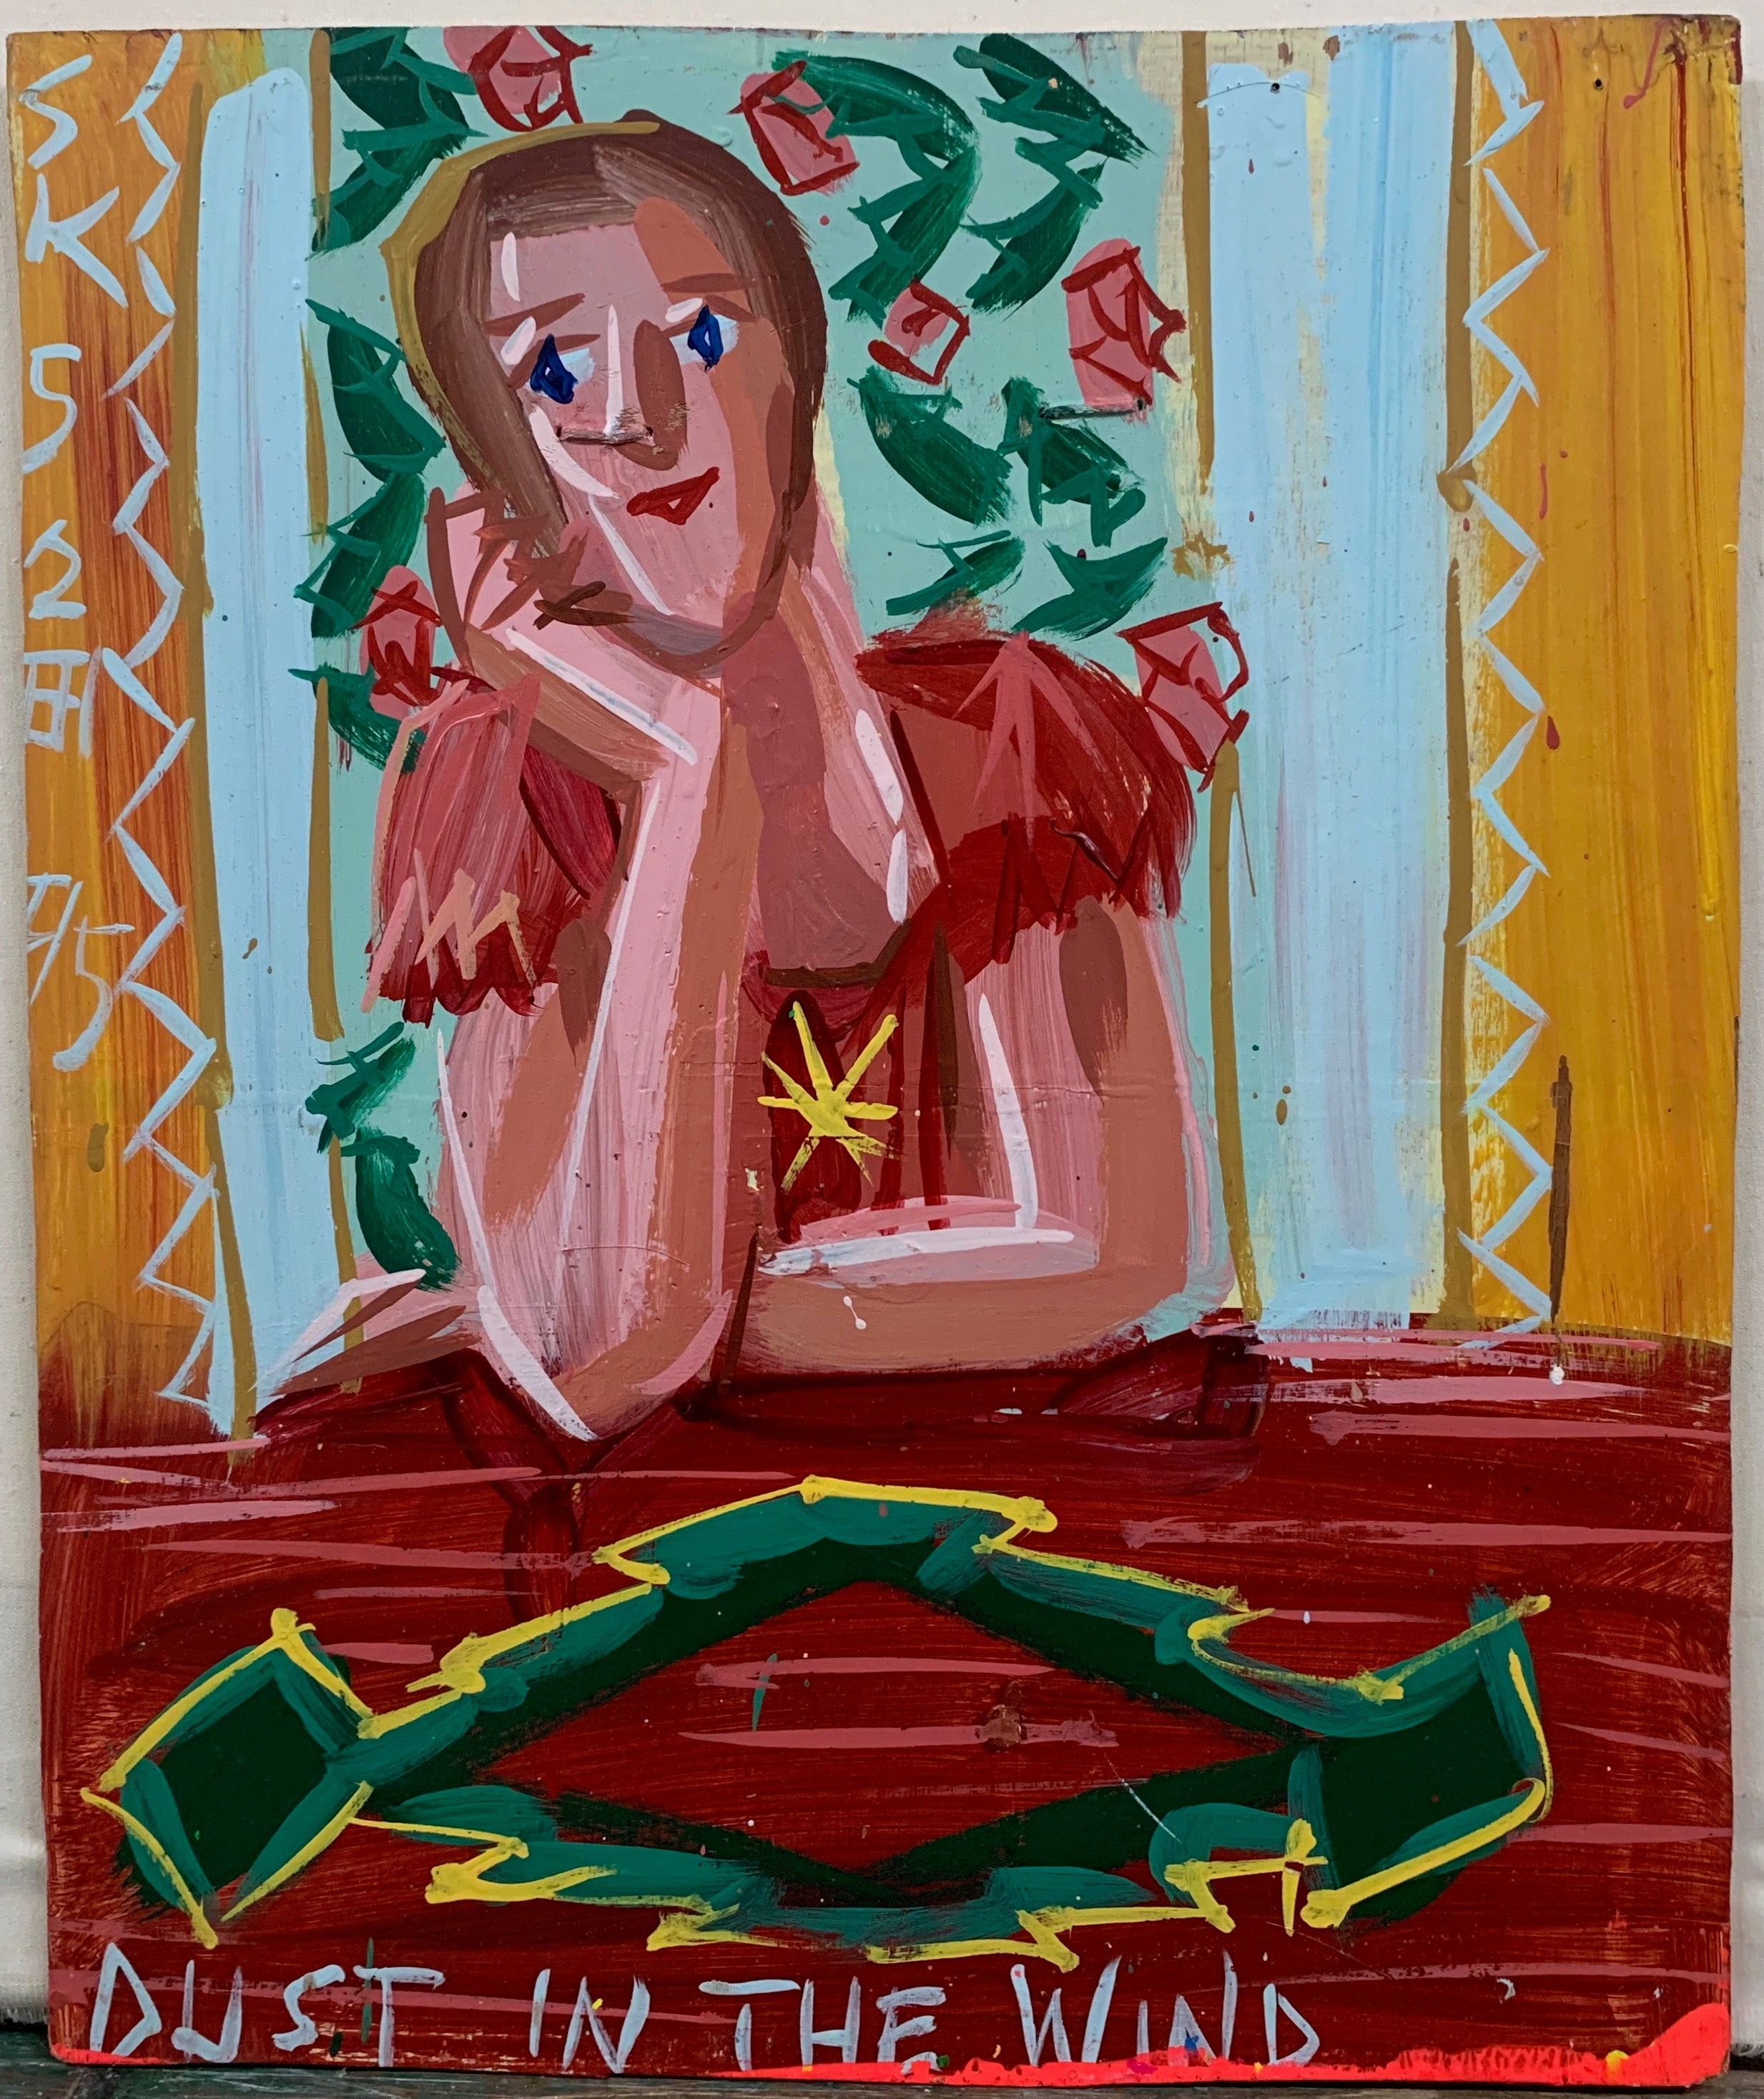 A Steve Keene painting of a woman in a red dress sitting at a red table in front of vines of red roses.